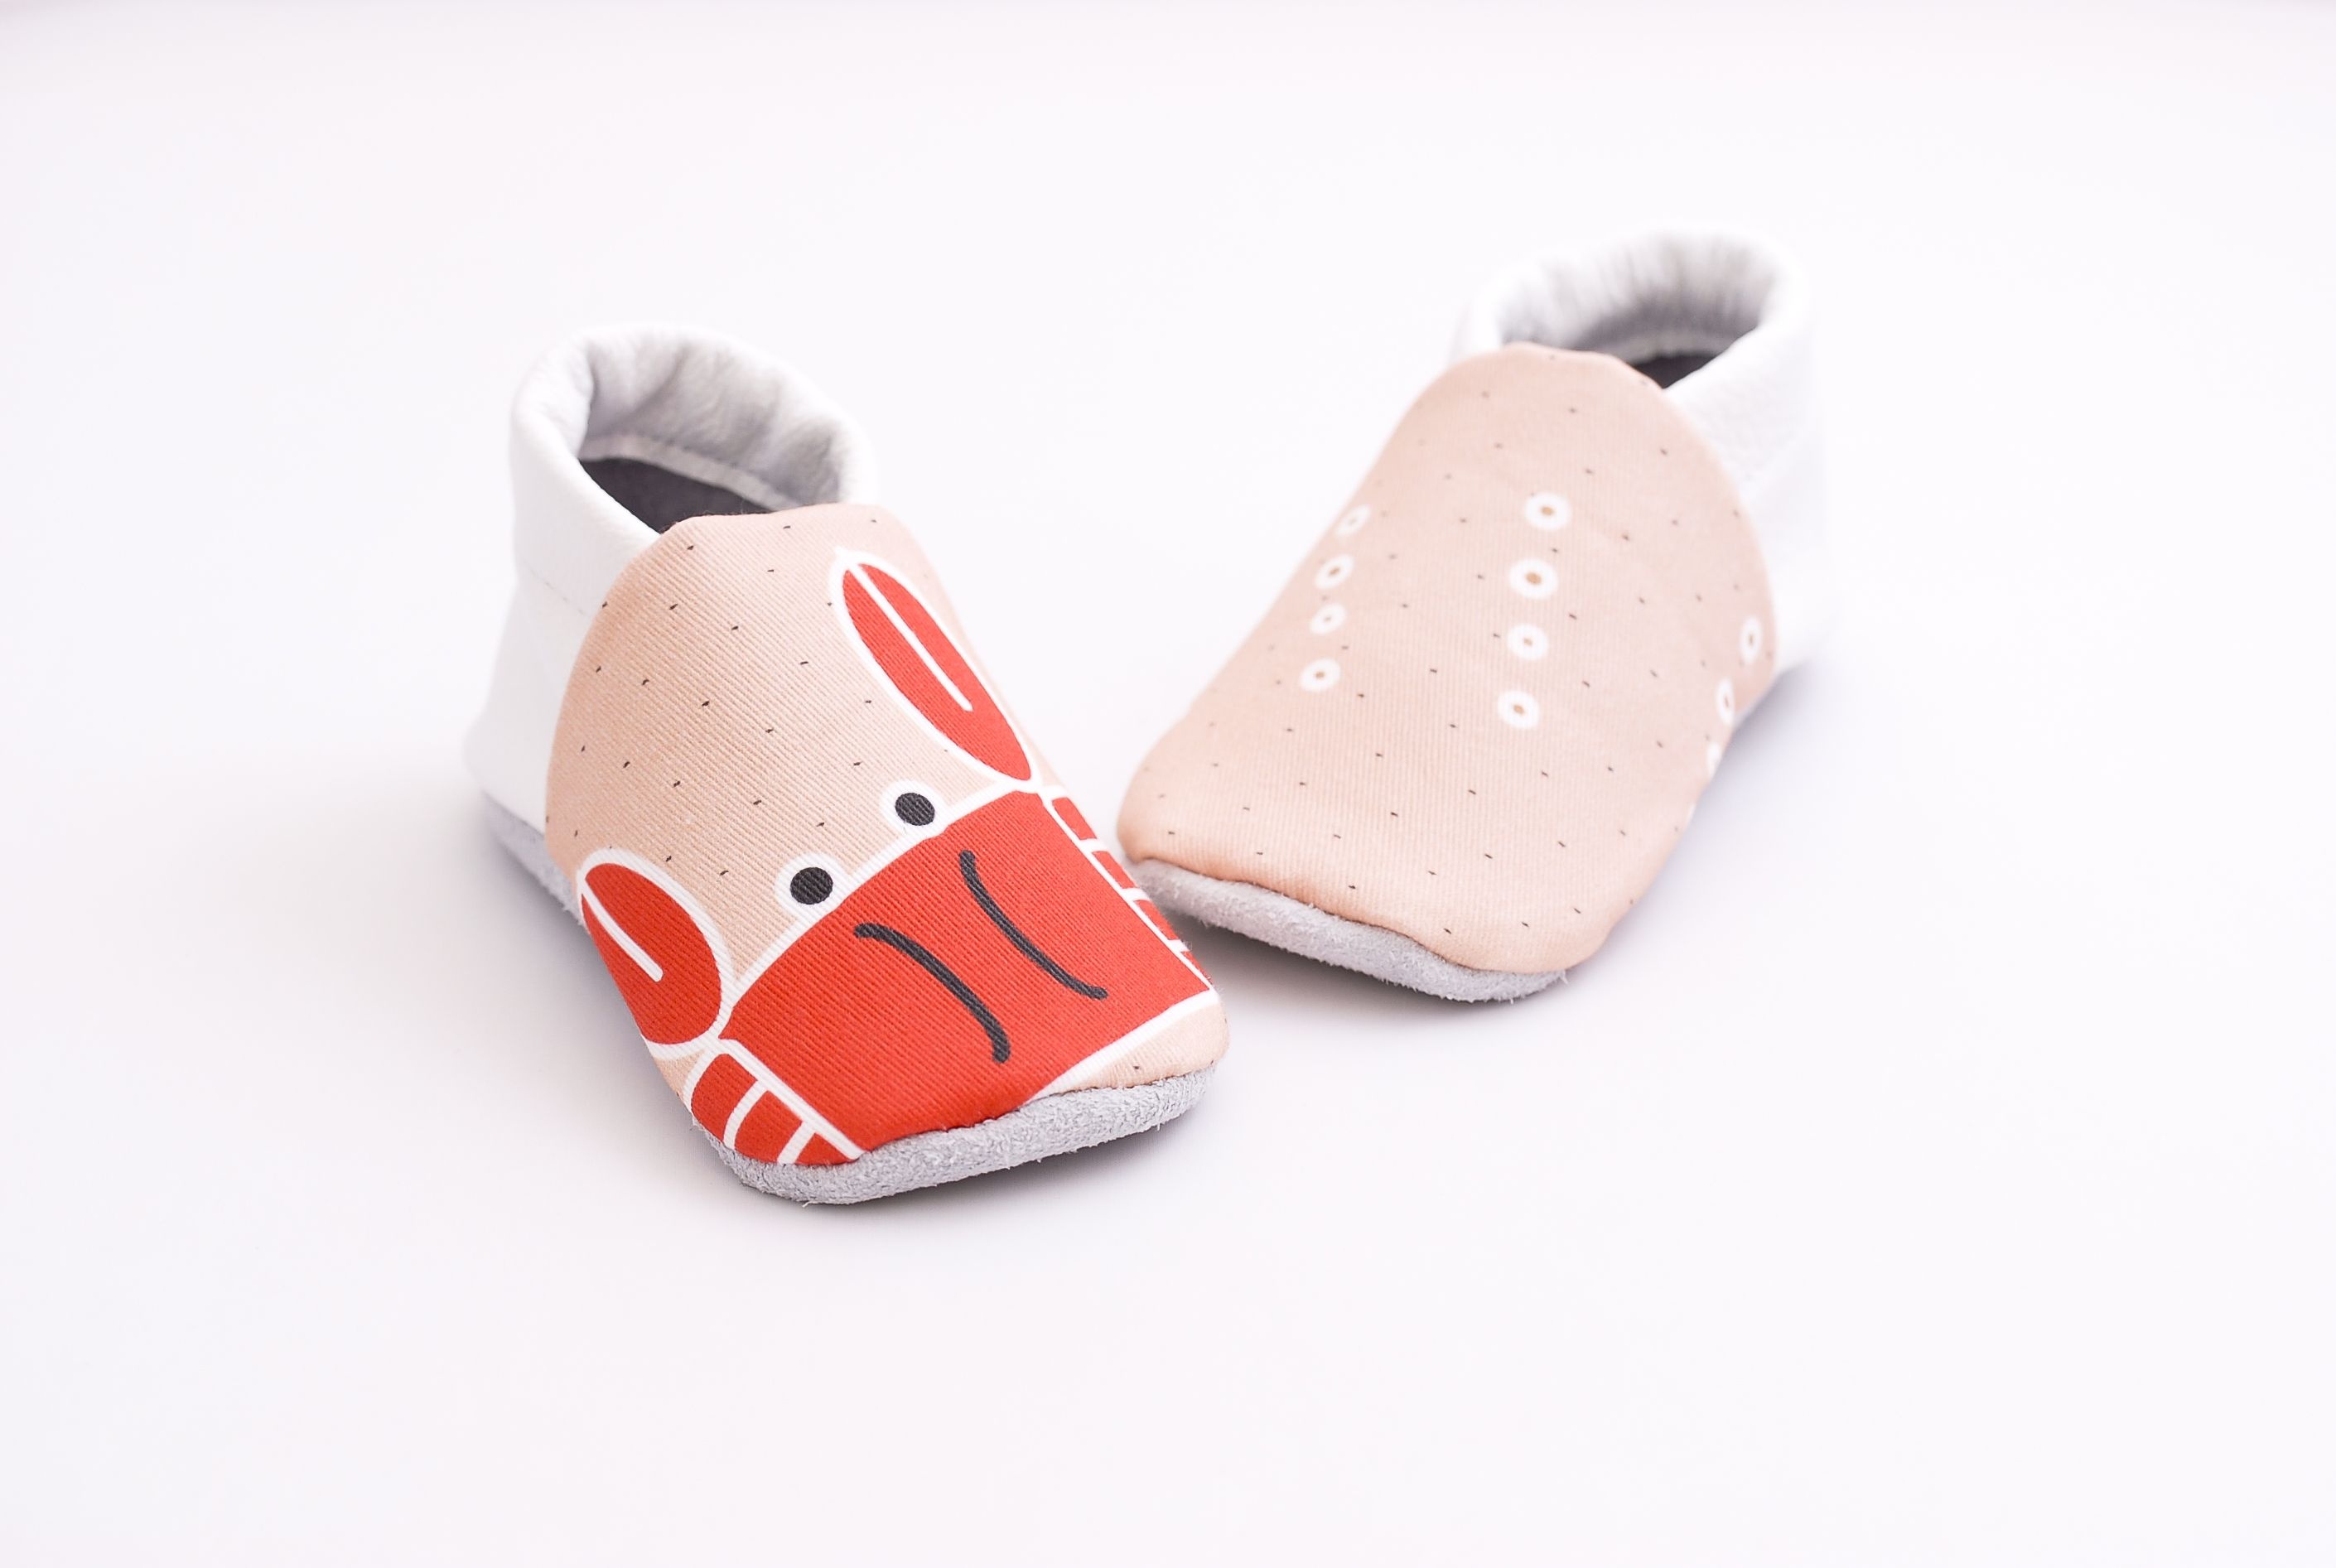 Grab the crab Soft sole shoes from FIRST BABY SHOES